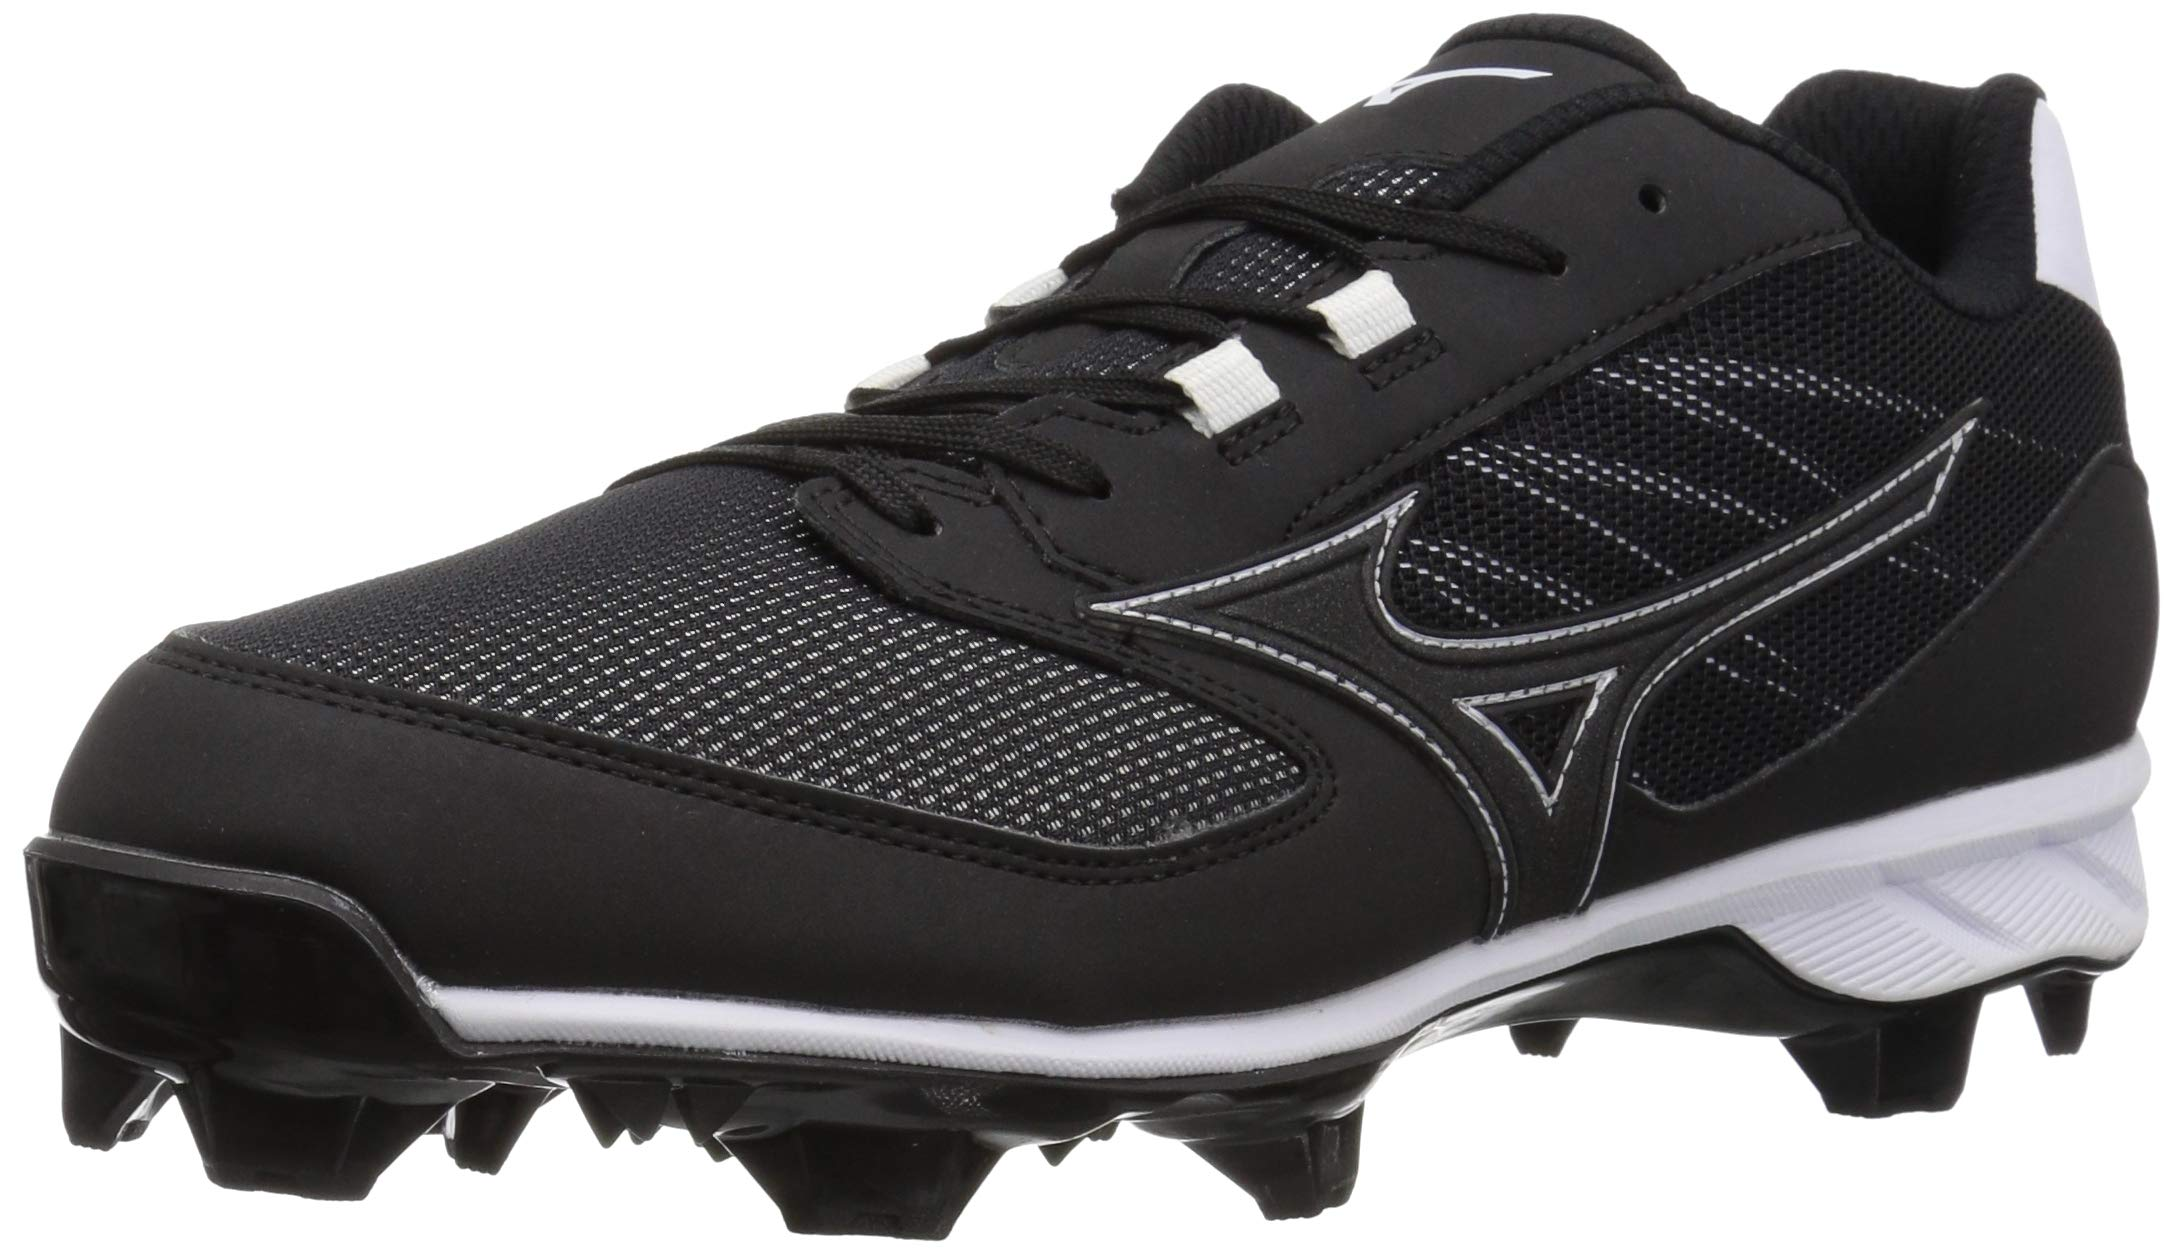 Mizuno Men's 9-Spike Advanced Dominant TPU Molded Baseball Cleat Shoe, Black/White, 10.5 D US by Mizuno